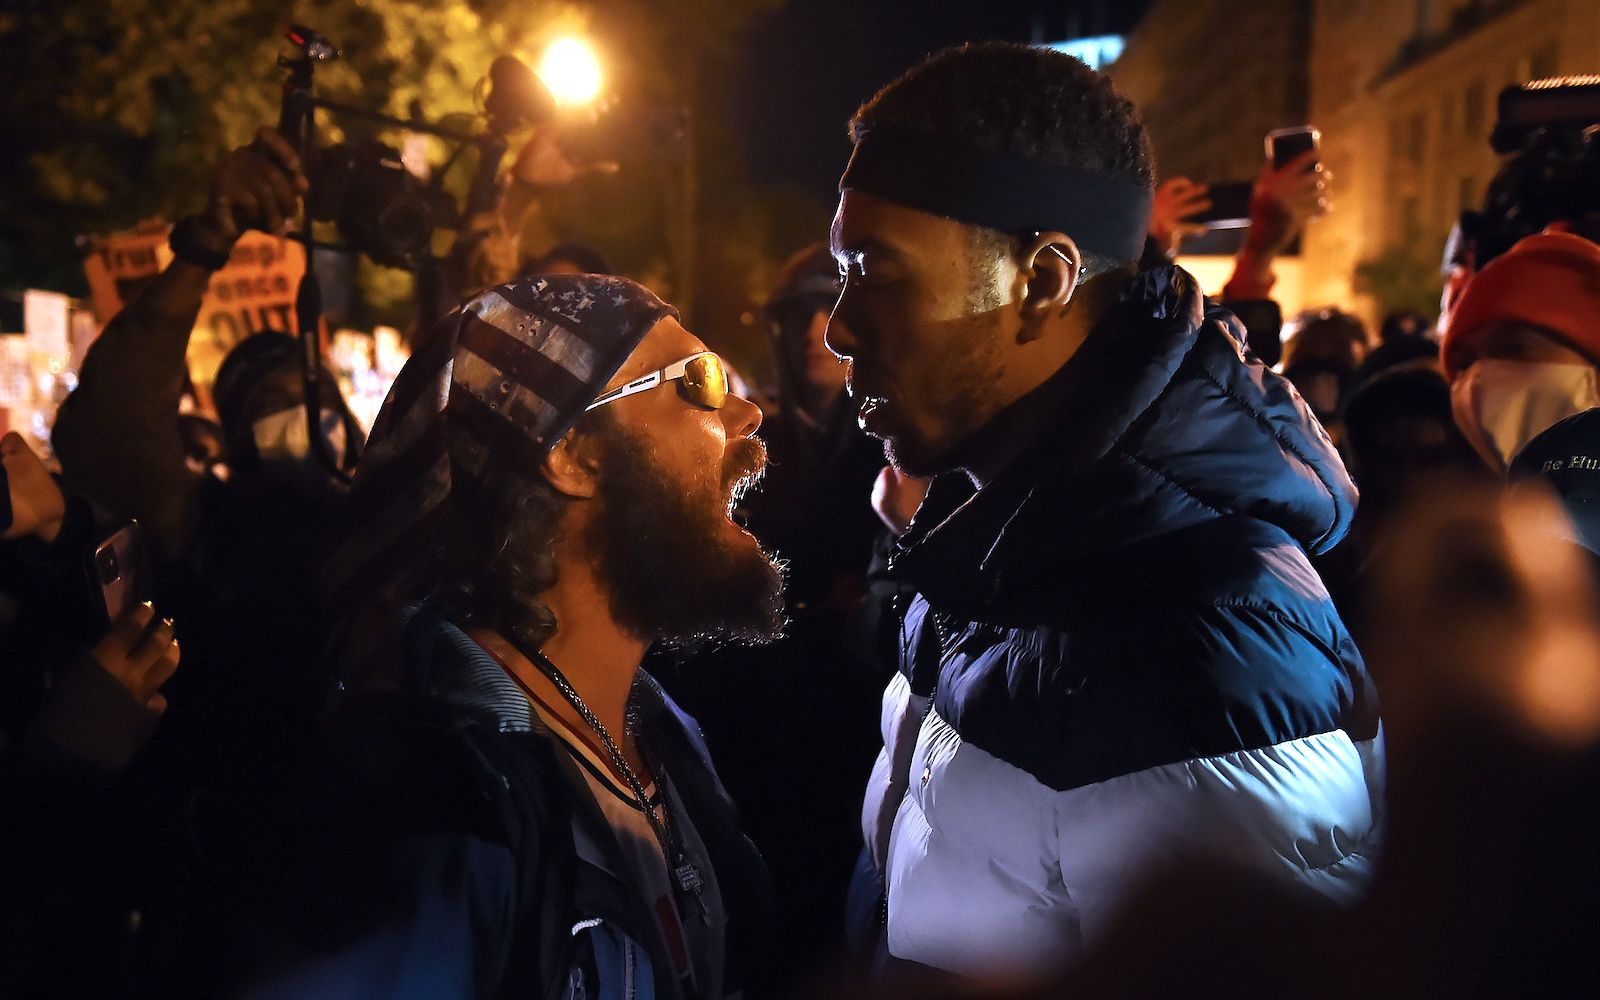 A Trump supporter (left) clashes with a demonstrator at Black Lives Matter plaza, across from the White House in Washington, DC, on 3 November 2020 (Olivier Douliery/AFP via Getty Images)